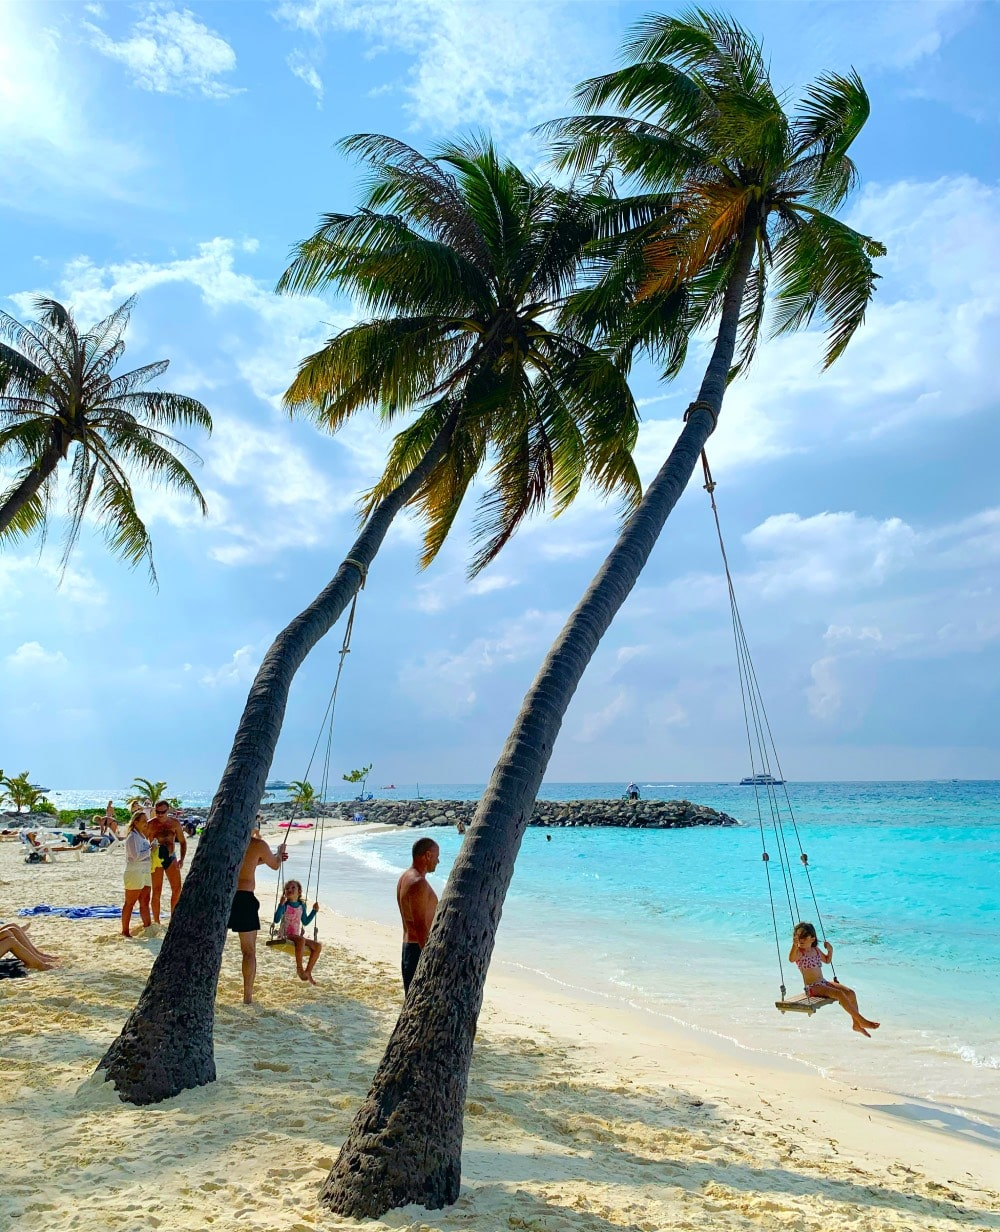 maafushi maldives sea beach palm tree swing